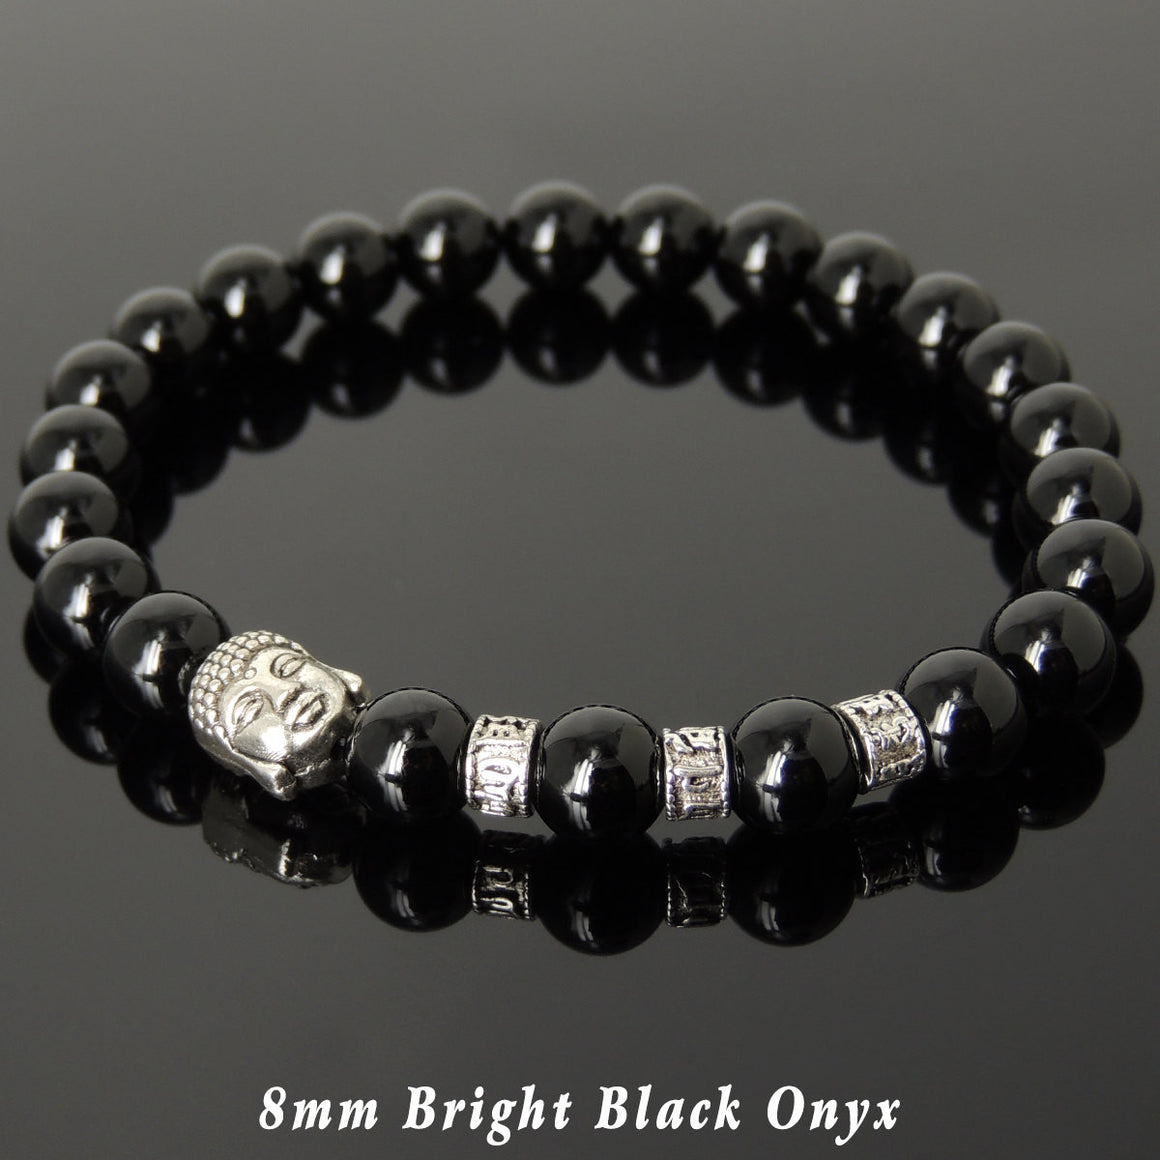 Bright Black Onyx Healing Gemstone Bracelet with Tibetan Silver Guayin Buddha & OM Meditation Spacer Beads - Handmade by Gem & Silver TSB324